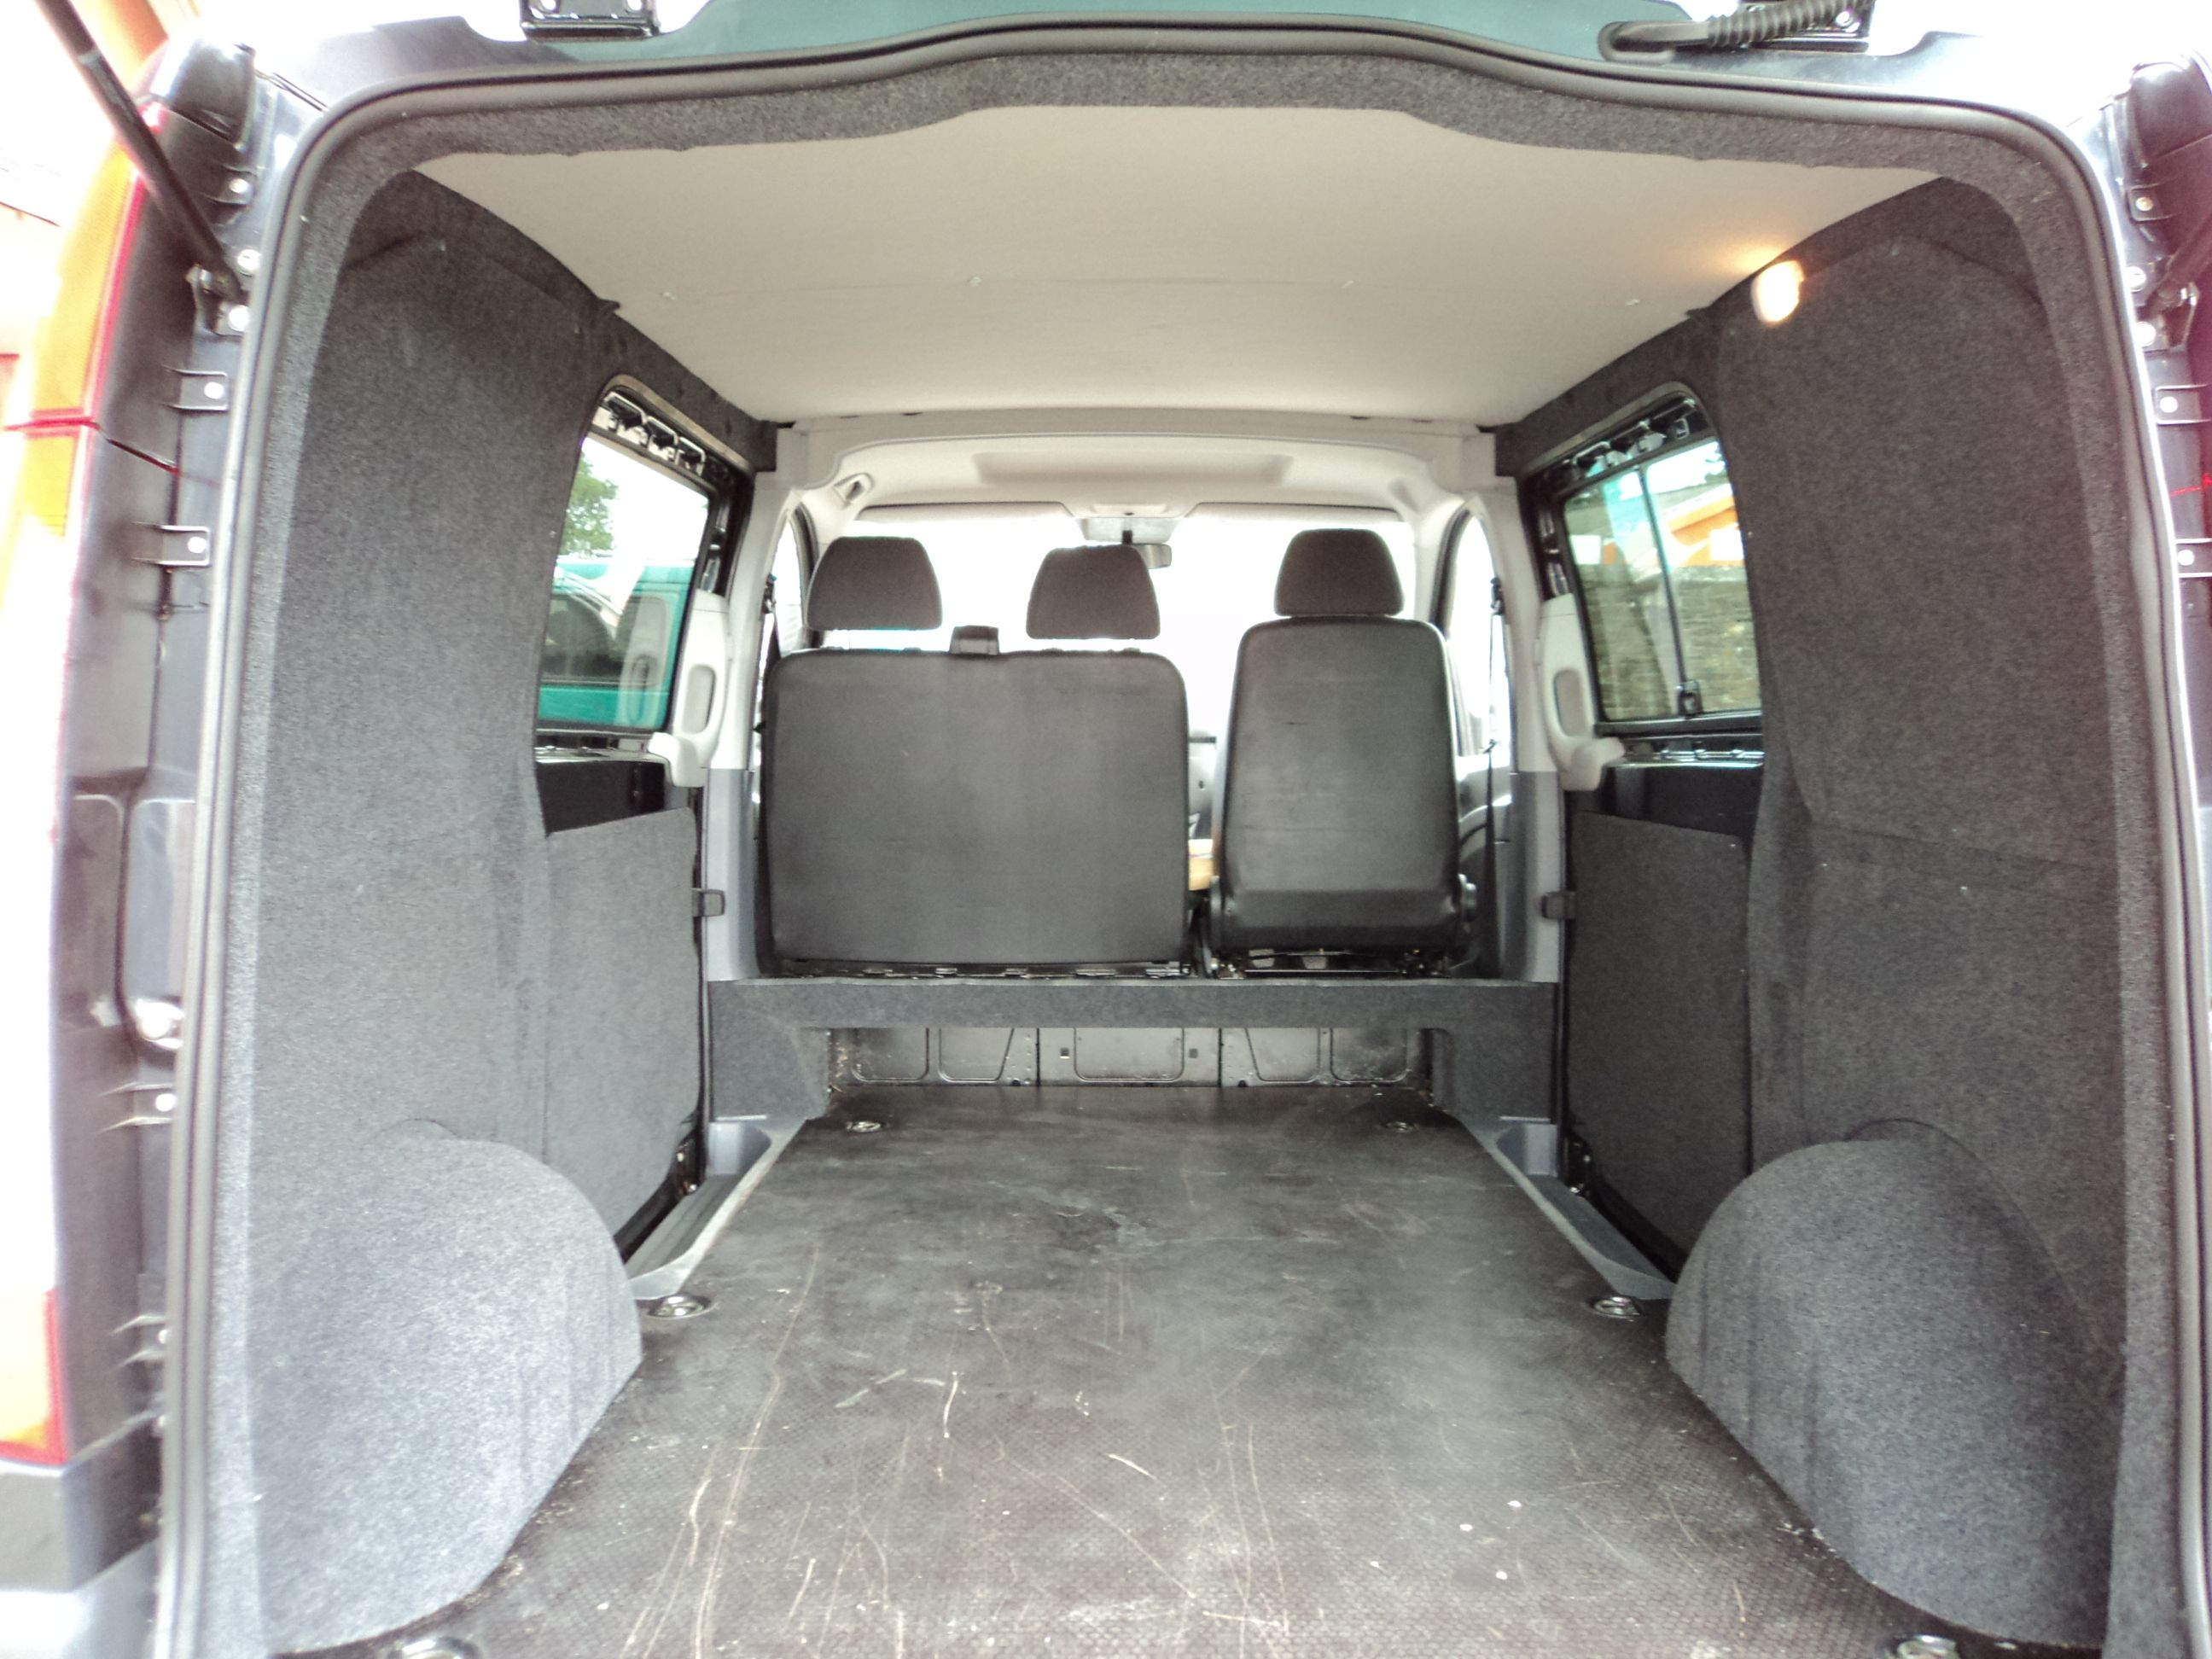 We Have Recently Insulated Ply Lined And Carpeted A Mercedes Vito As Well Lining The Roof Panels To Make Van Look Nice On Inside It Does